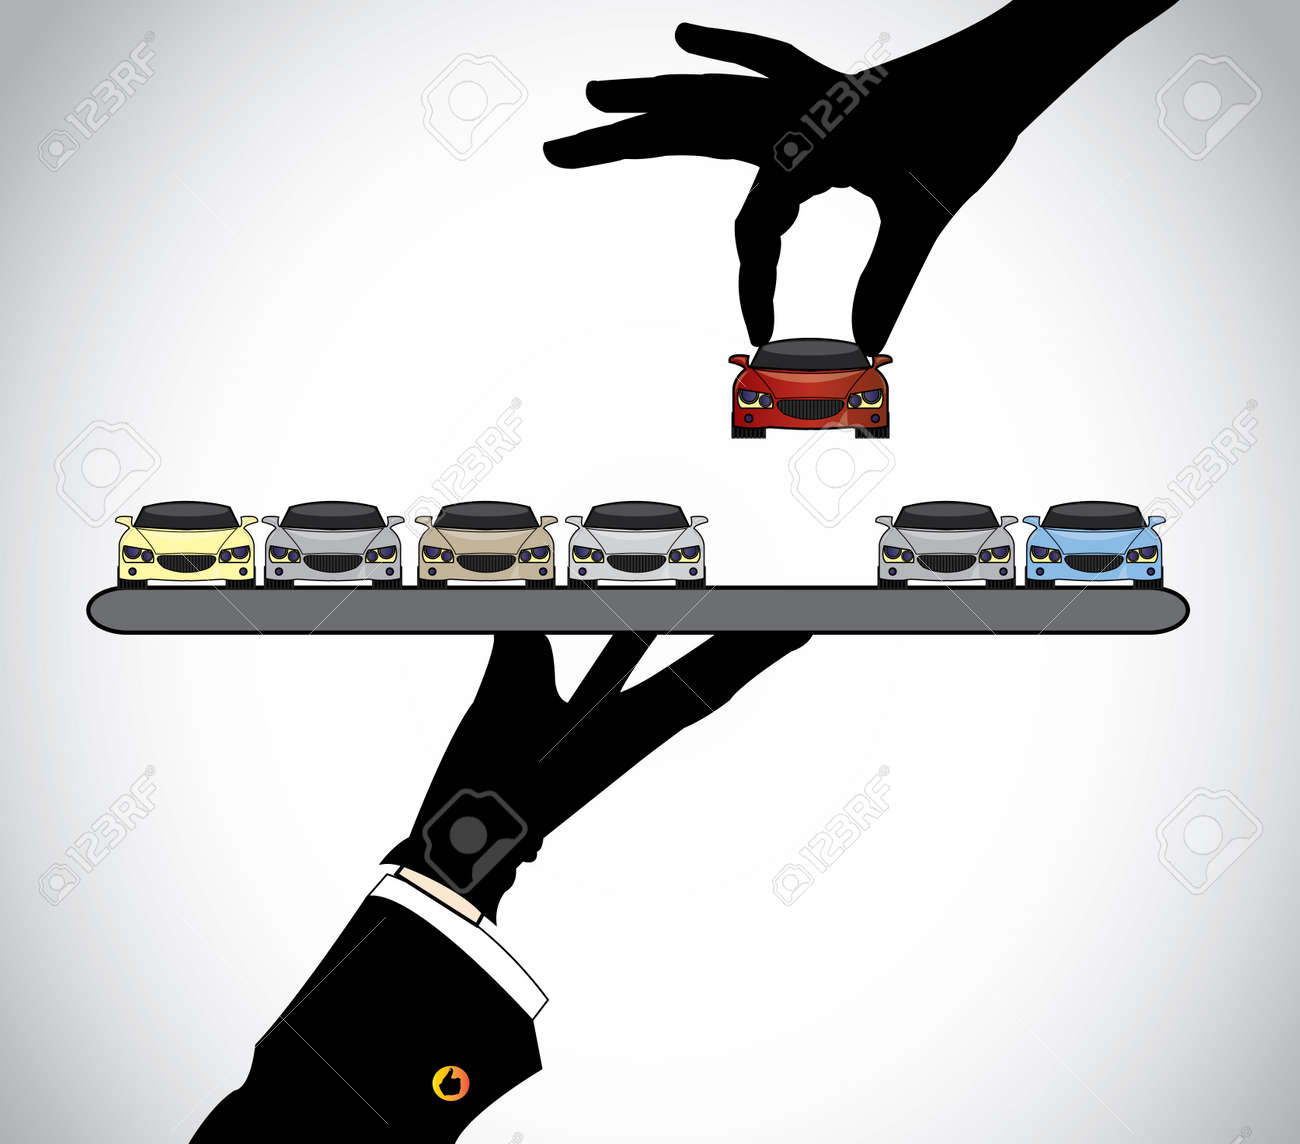 hand silhouette choosing the best red car from car dealer agent - concept illustration of customer selecting a beautiful red car from a set of cars offered to him by the seller on a tray - 28406348